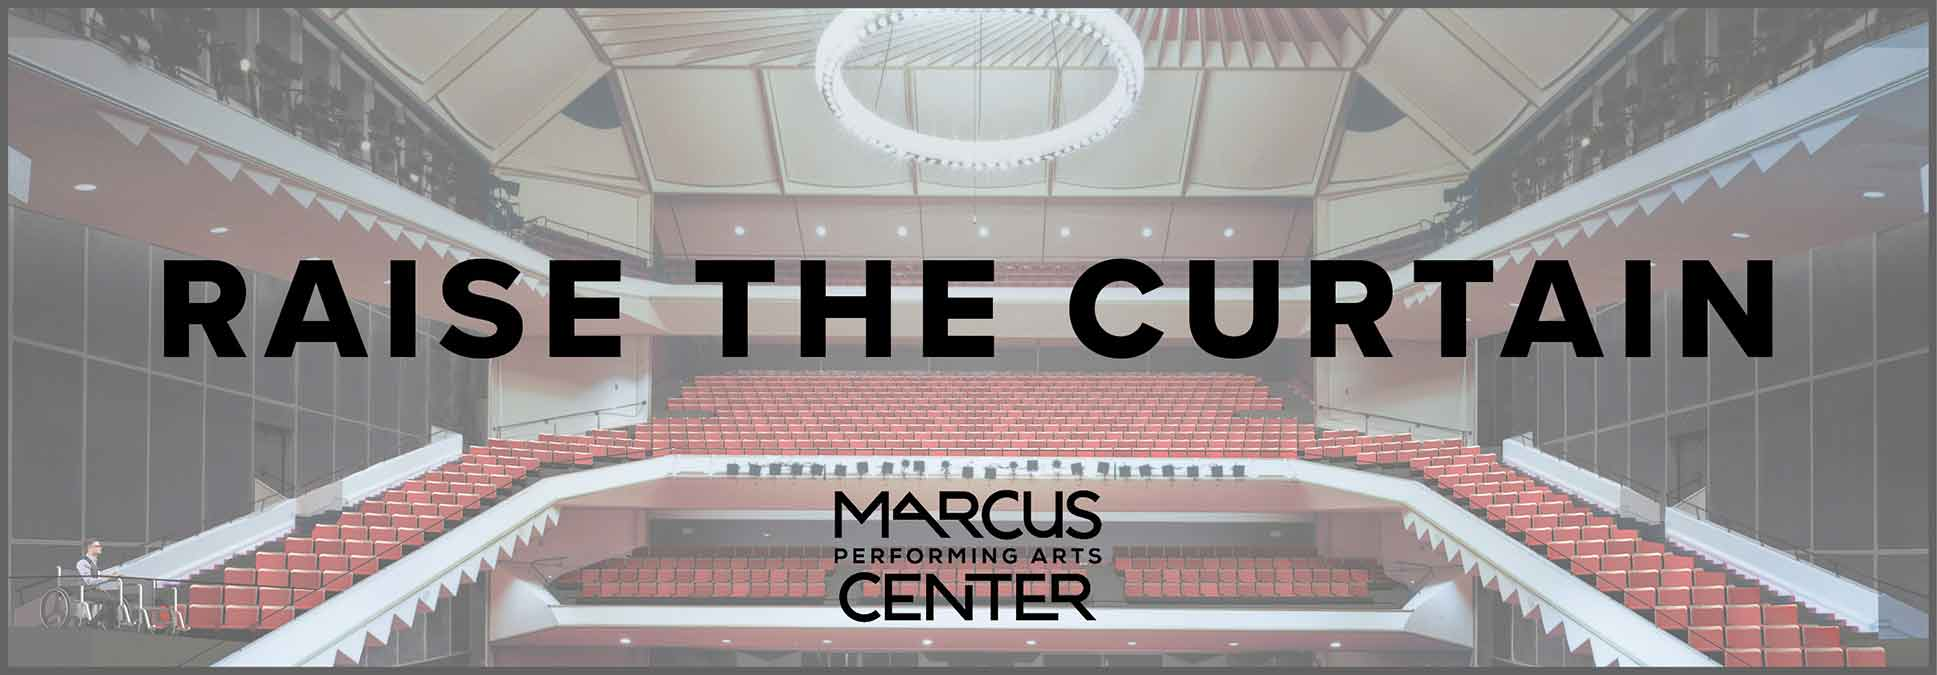 Raise the Curtain at the Marcus Center in Milwaukee